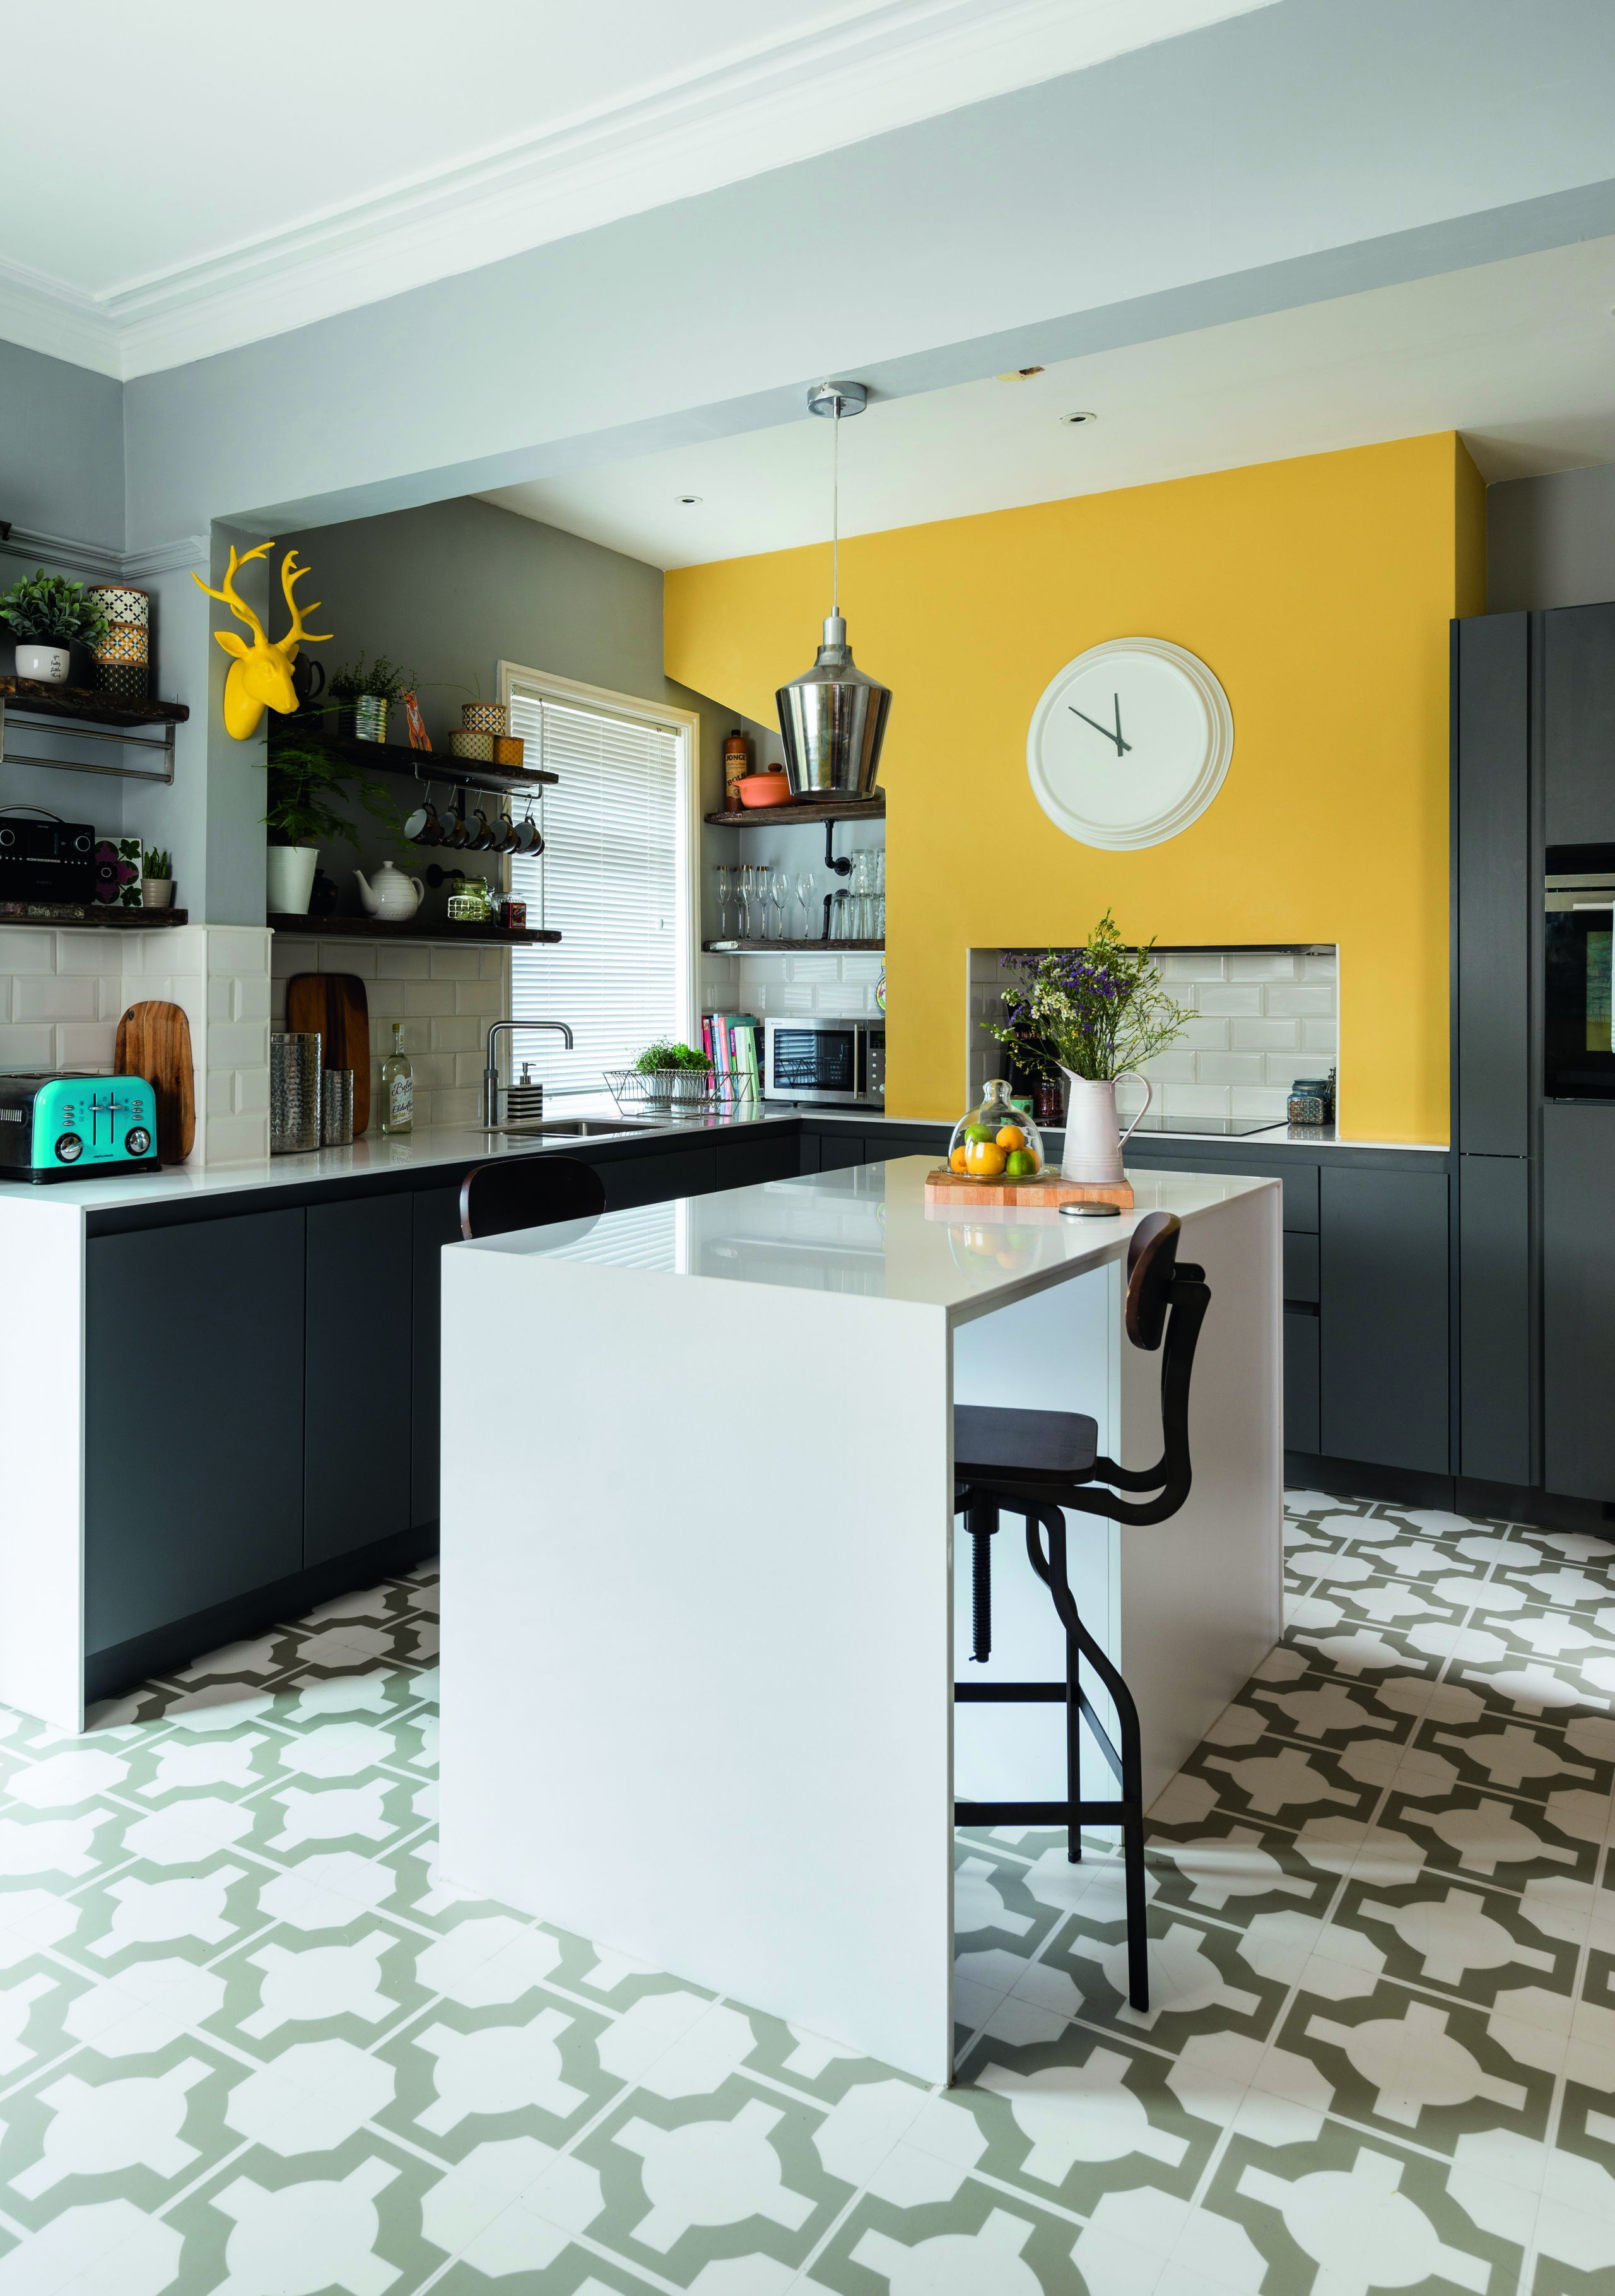 13 colourful kitchen design ideas kitchen feature wall yellow kitchen walls yellow kitchen on kitchen remodel yellow walls id=24130